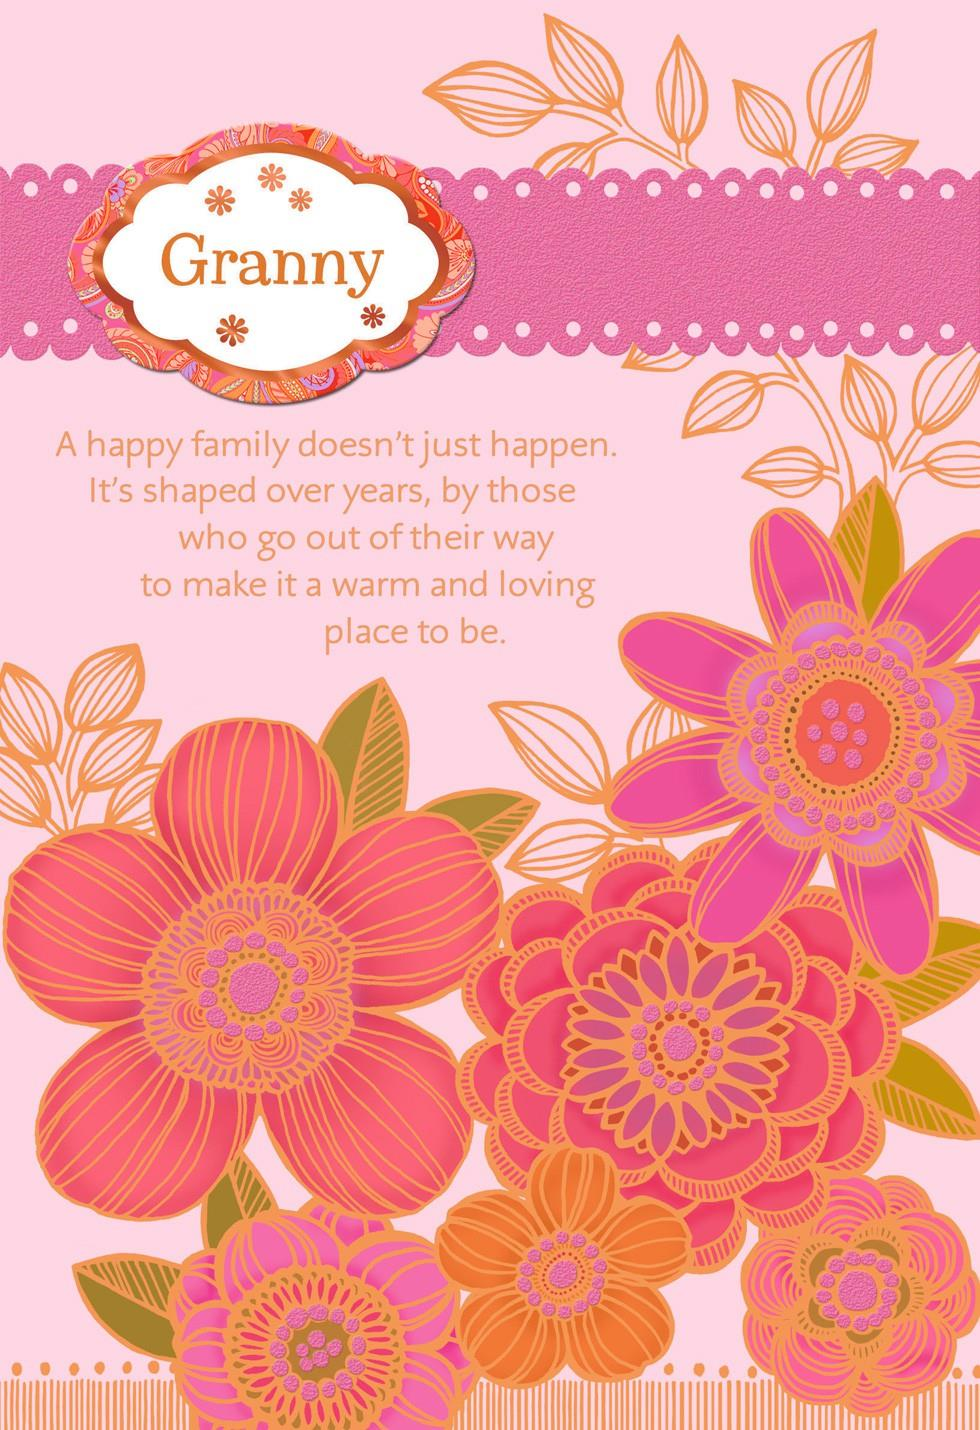 Special Names For Grandma With Personalization Stickers